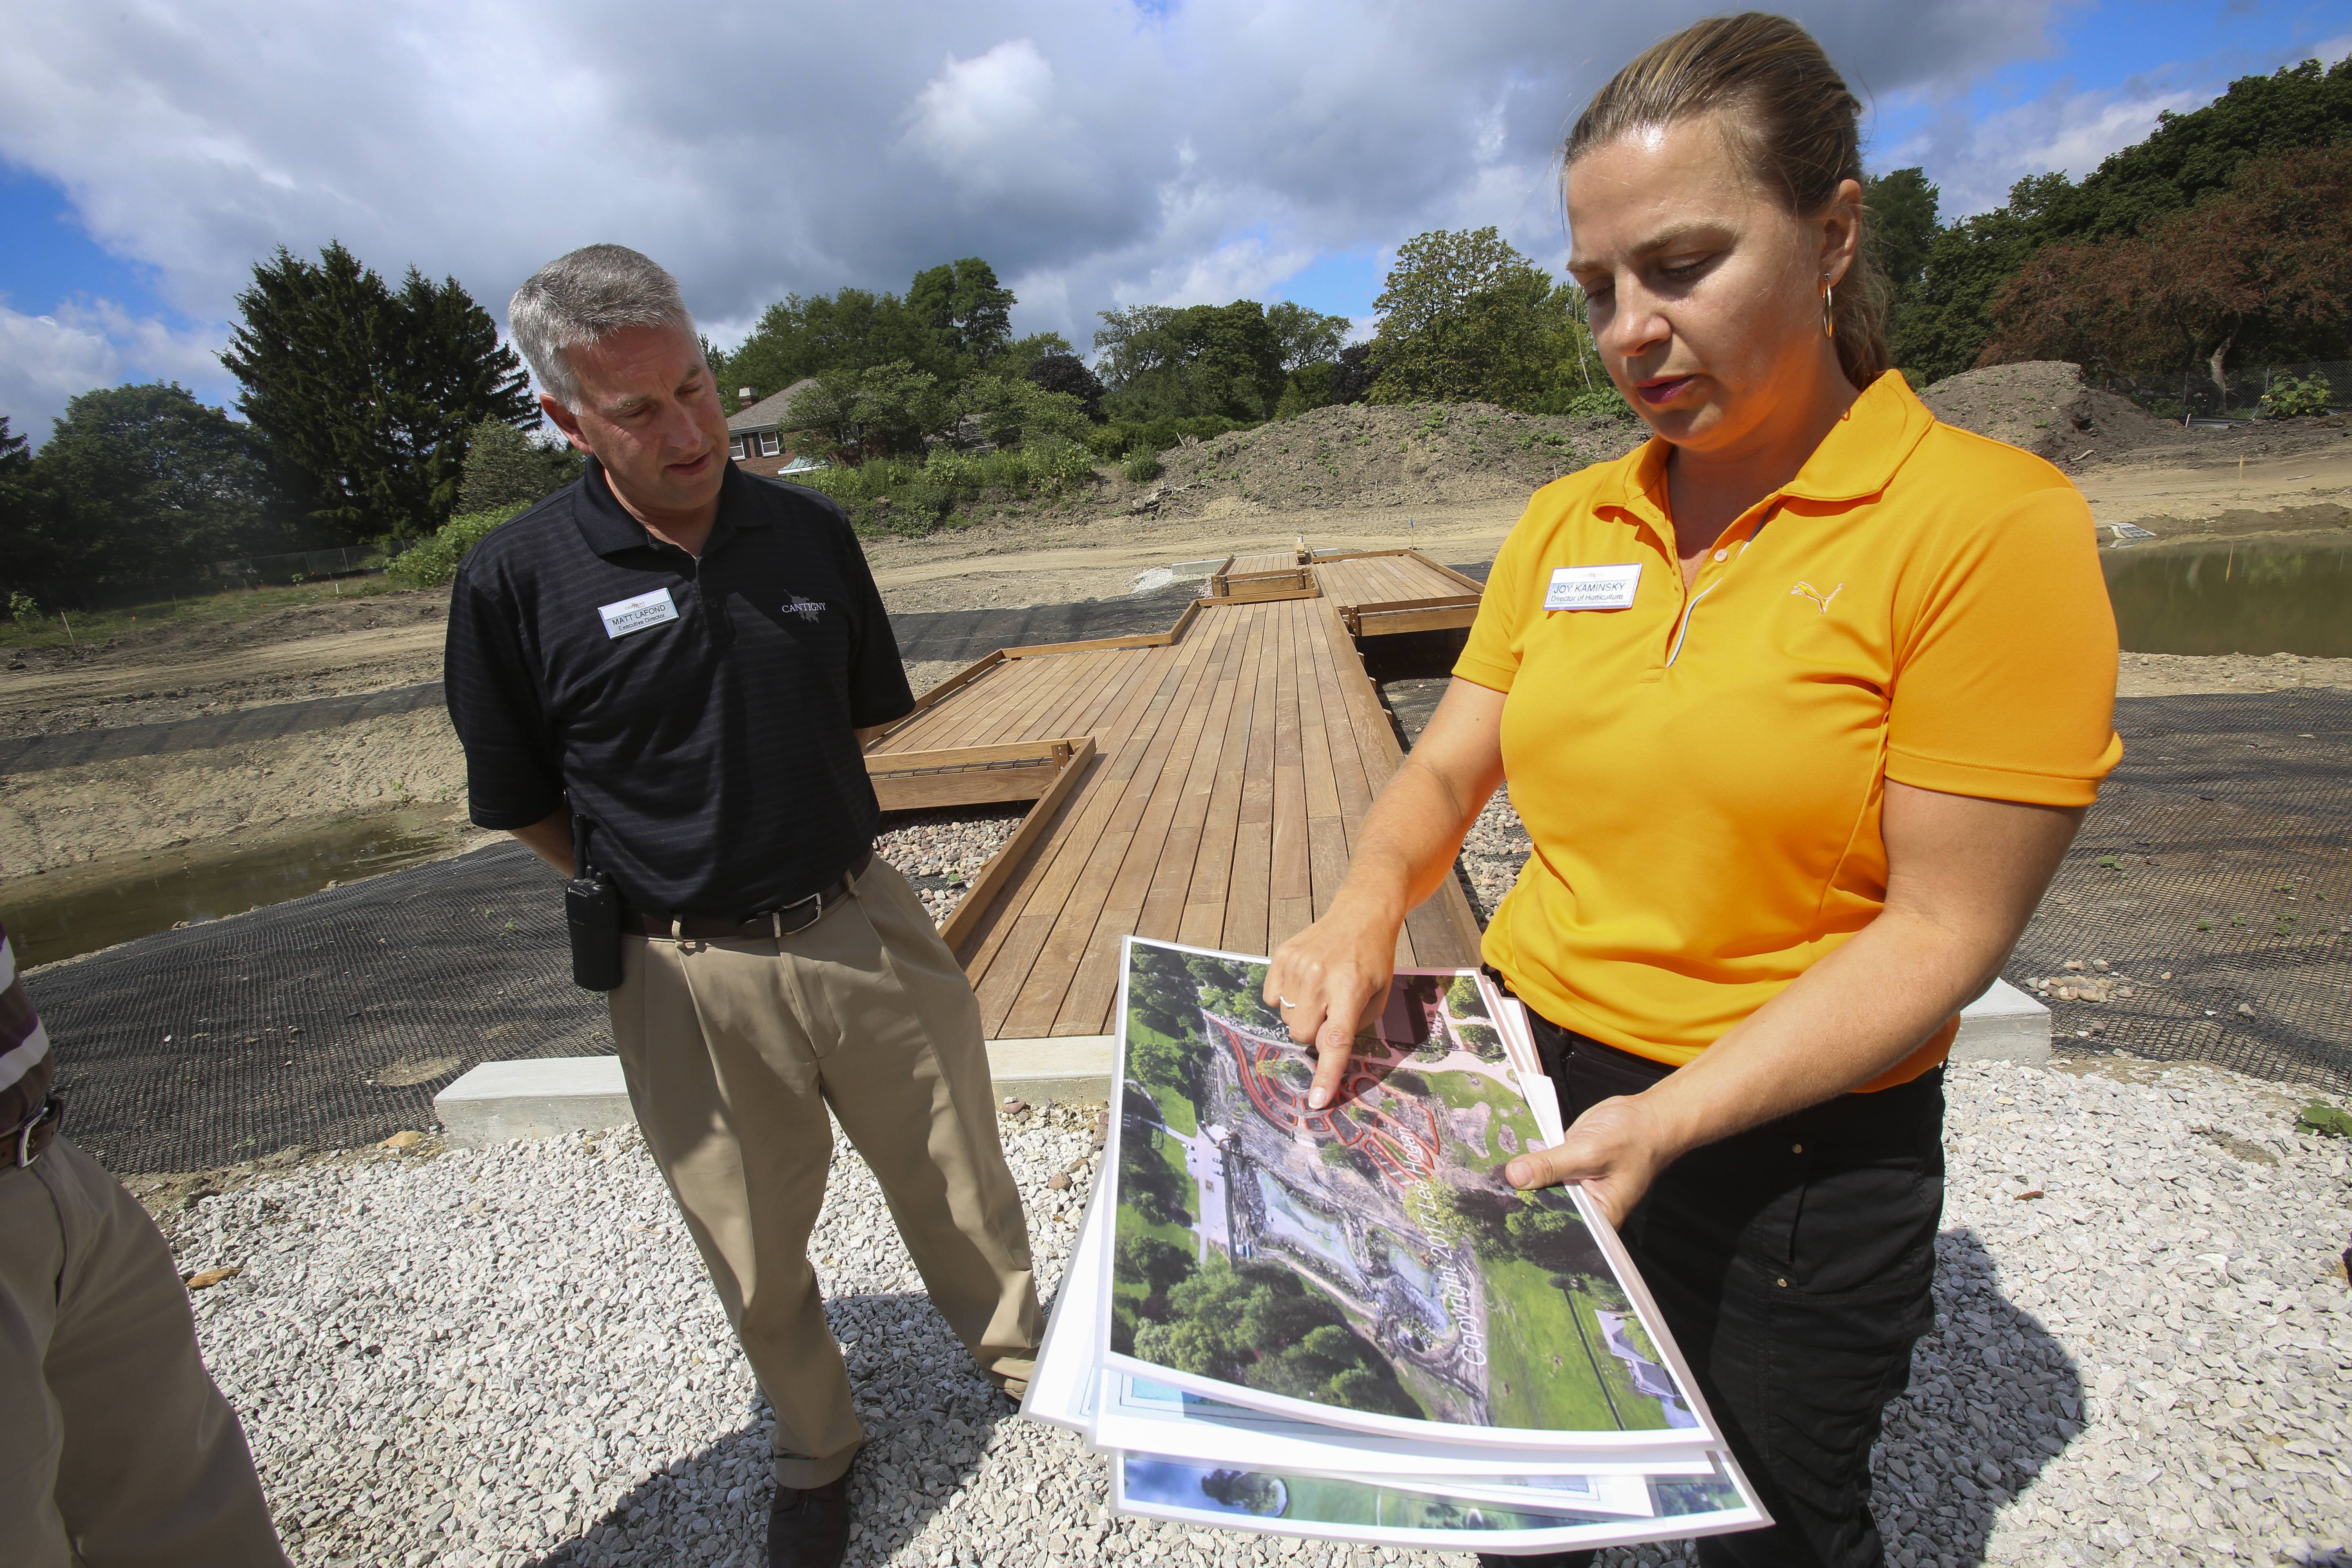 What's next at Cantigny Park? Massive redesign of gardens, campus